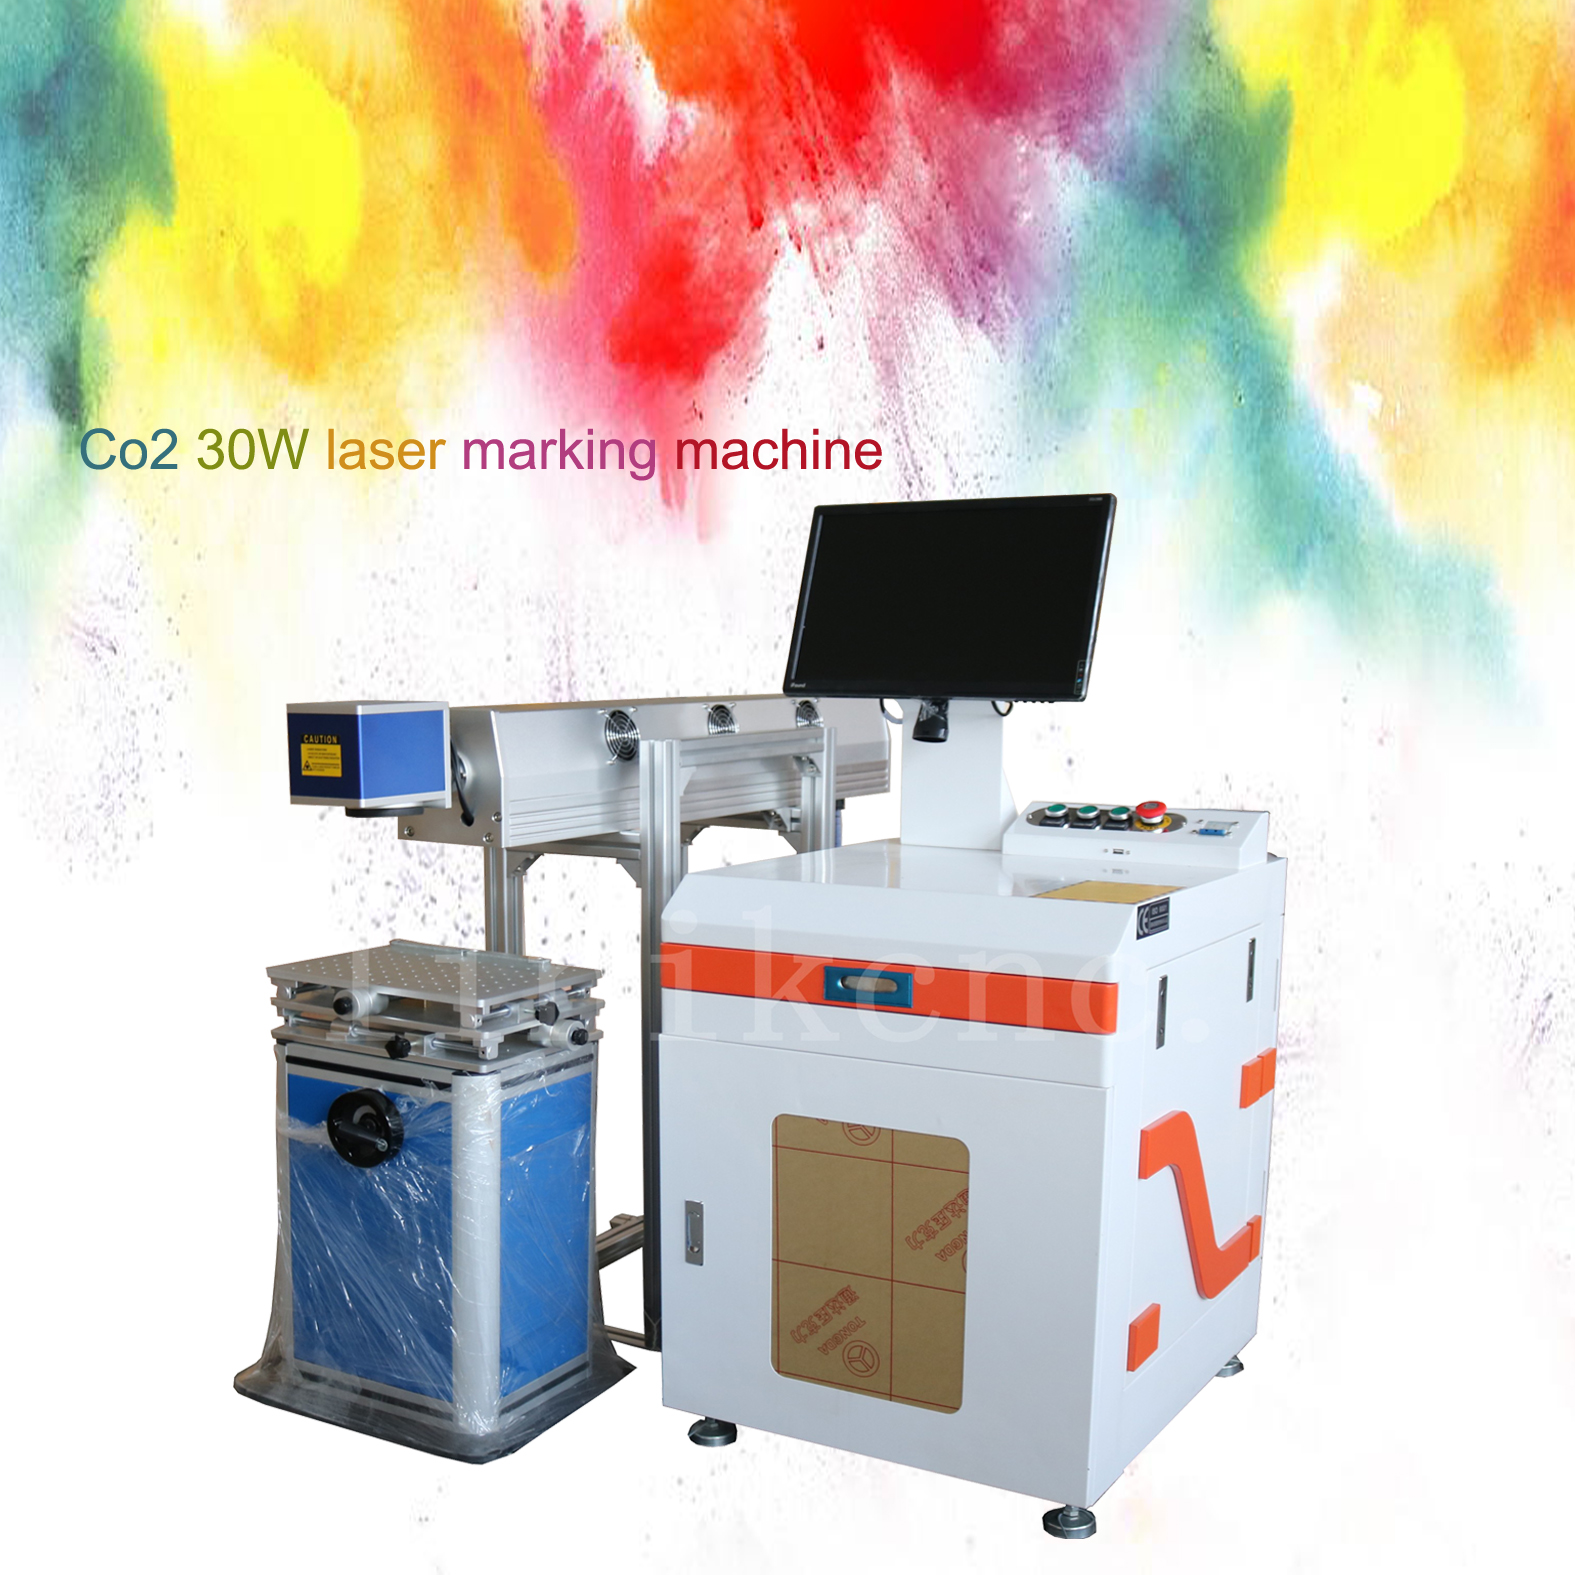 Direct sales LXC-30W plastic fiber keyboard Co2 laser marking table top